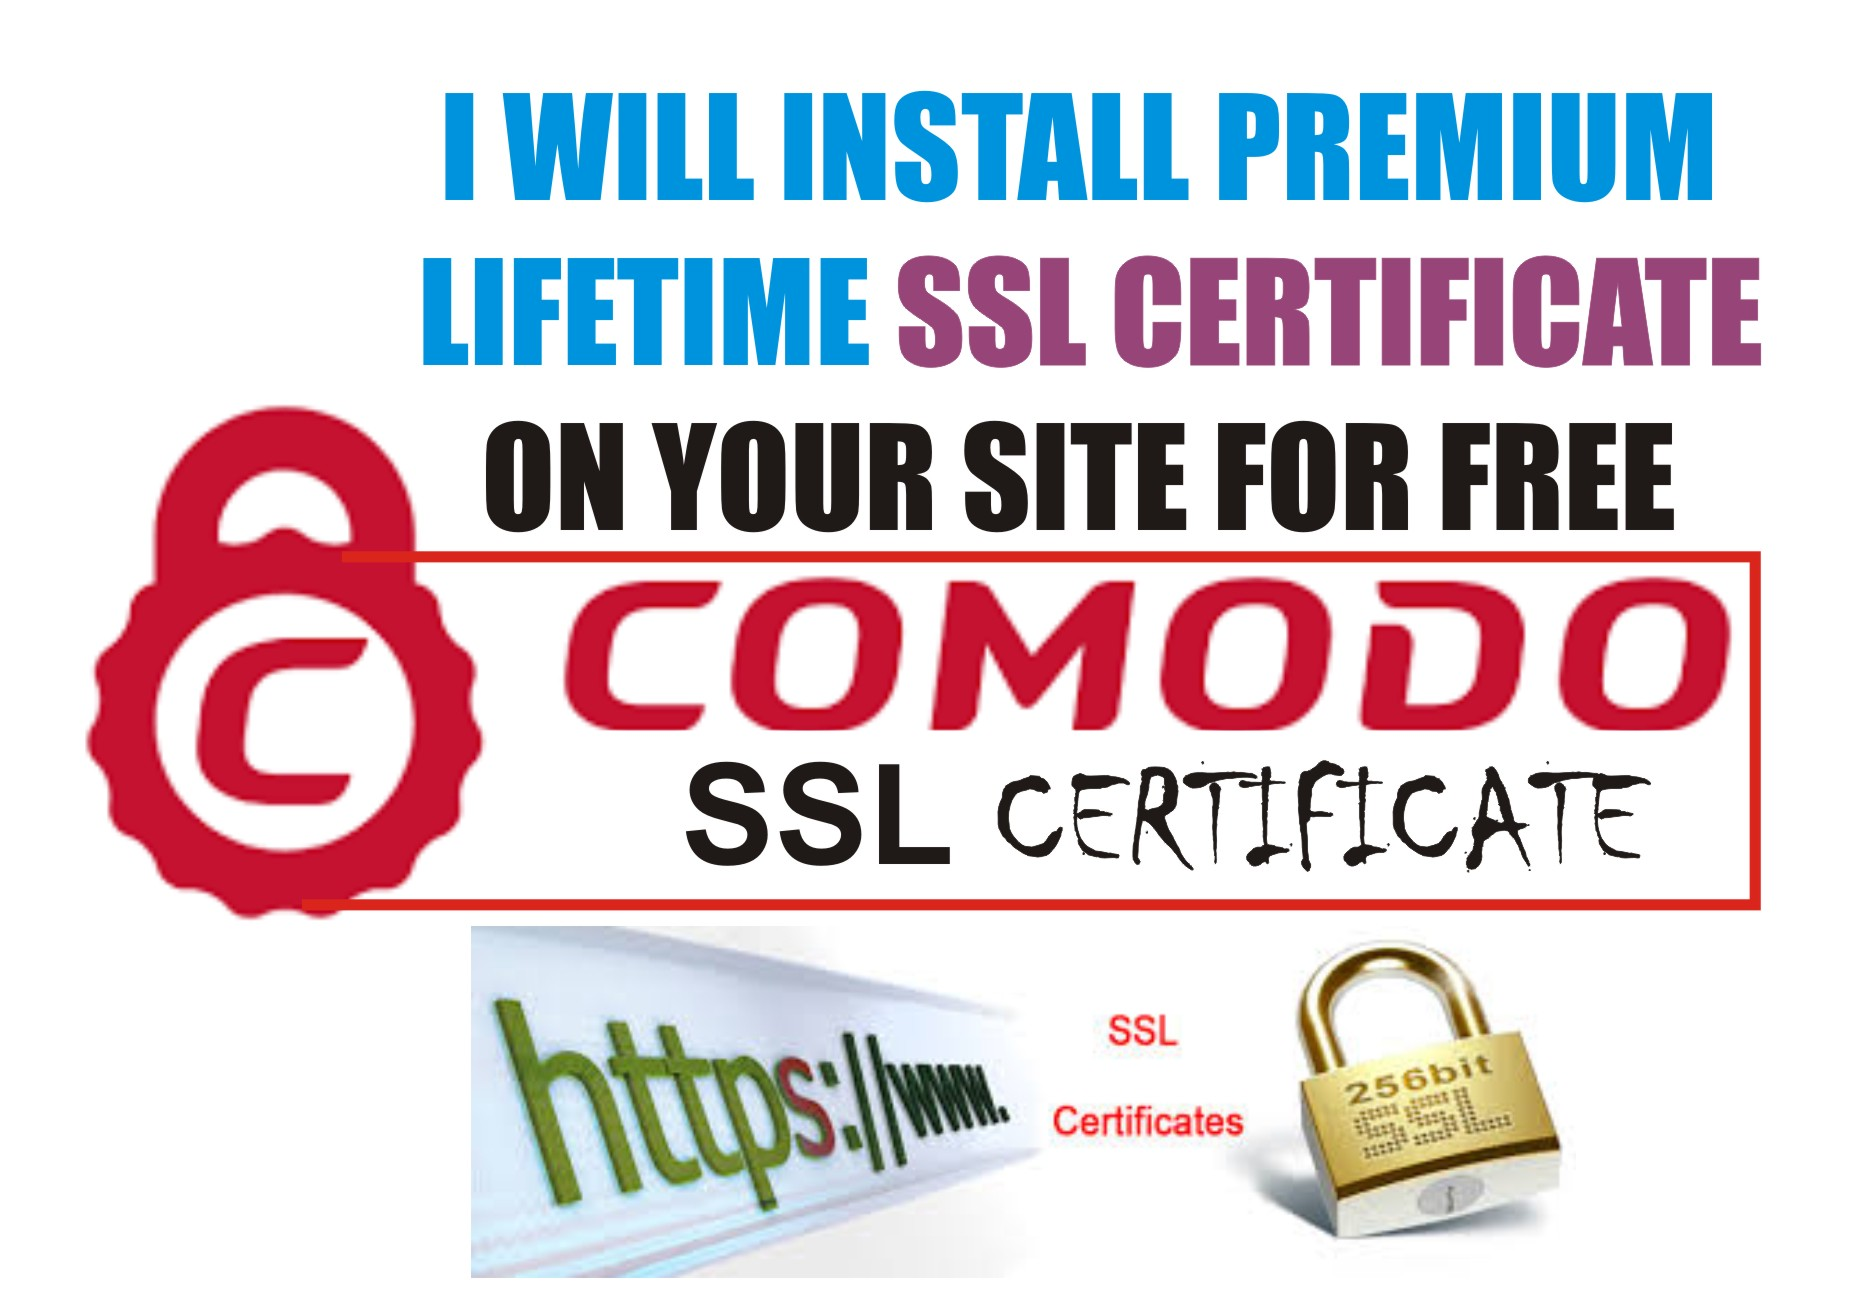 Generate And Install Ssl Certificate On You Domain Https By Elgibbor2